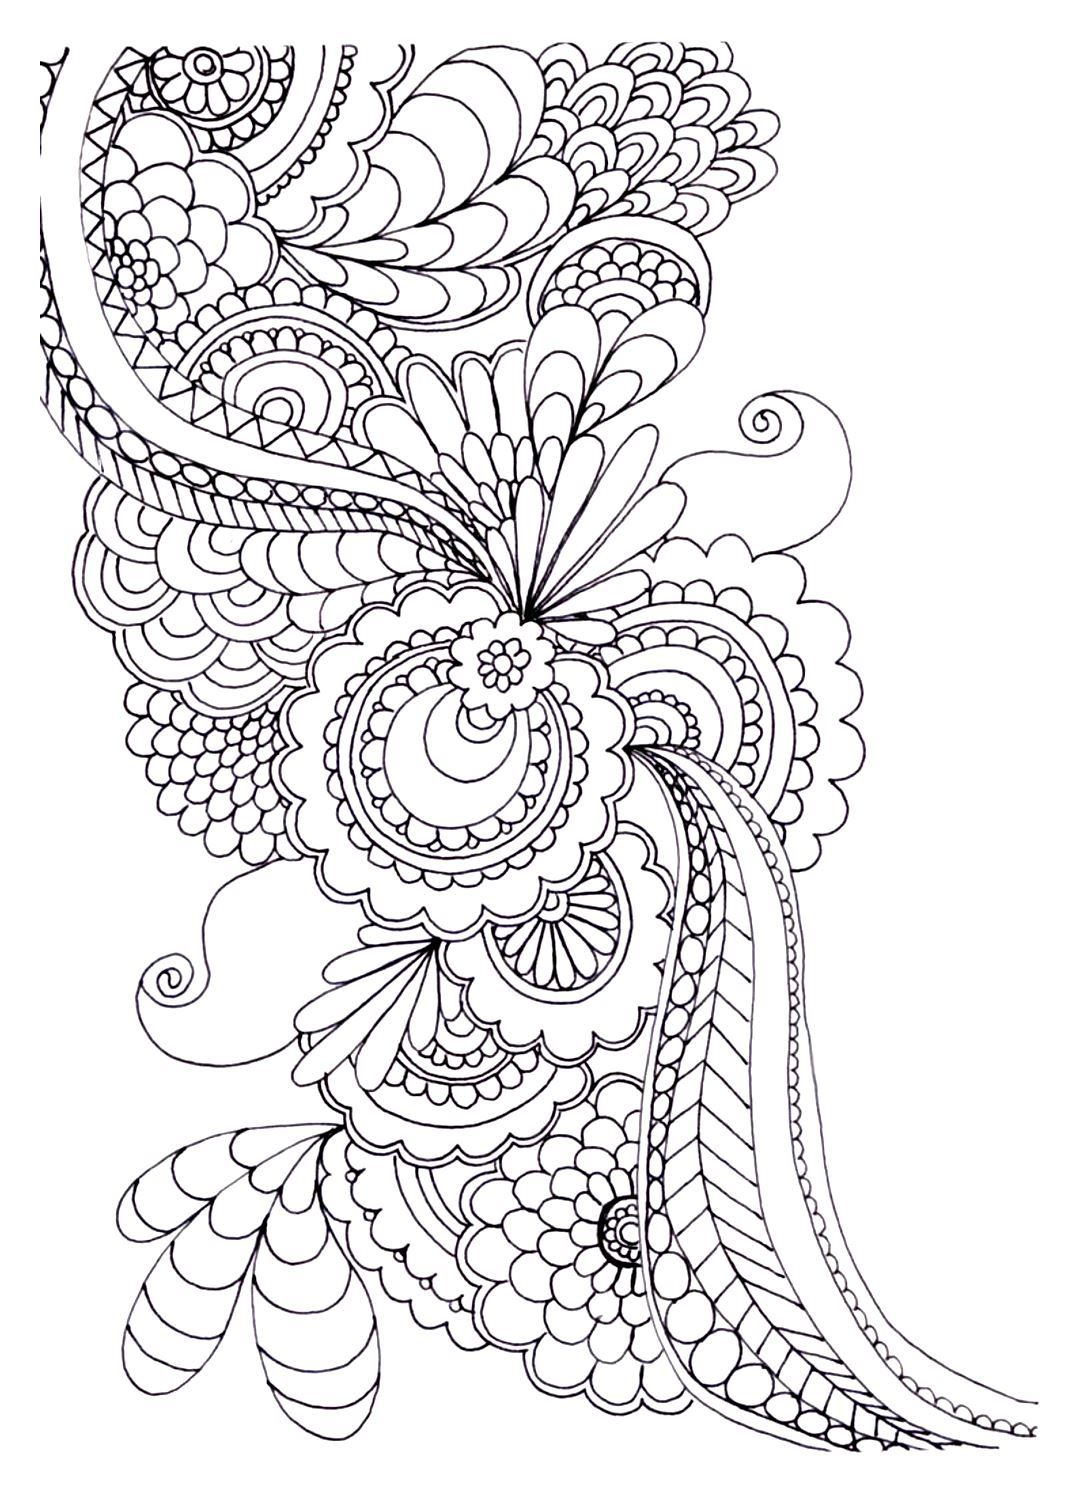 1081x1495 To Print This Free Coloring Page Adult Zen Anti Stress